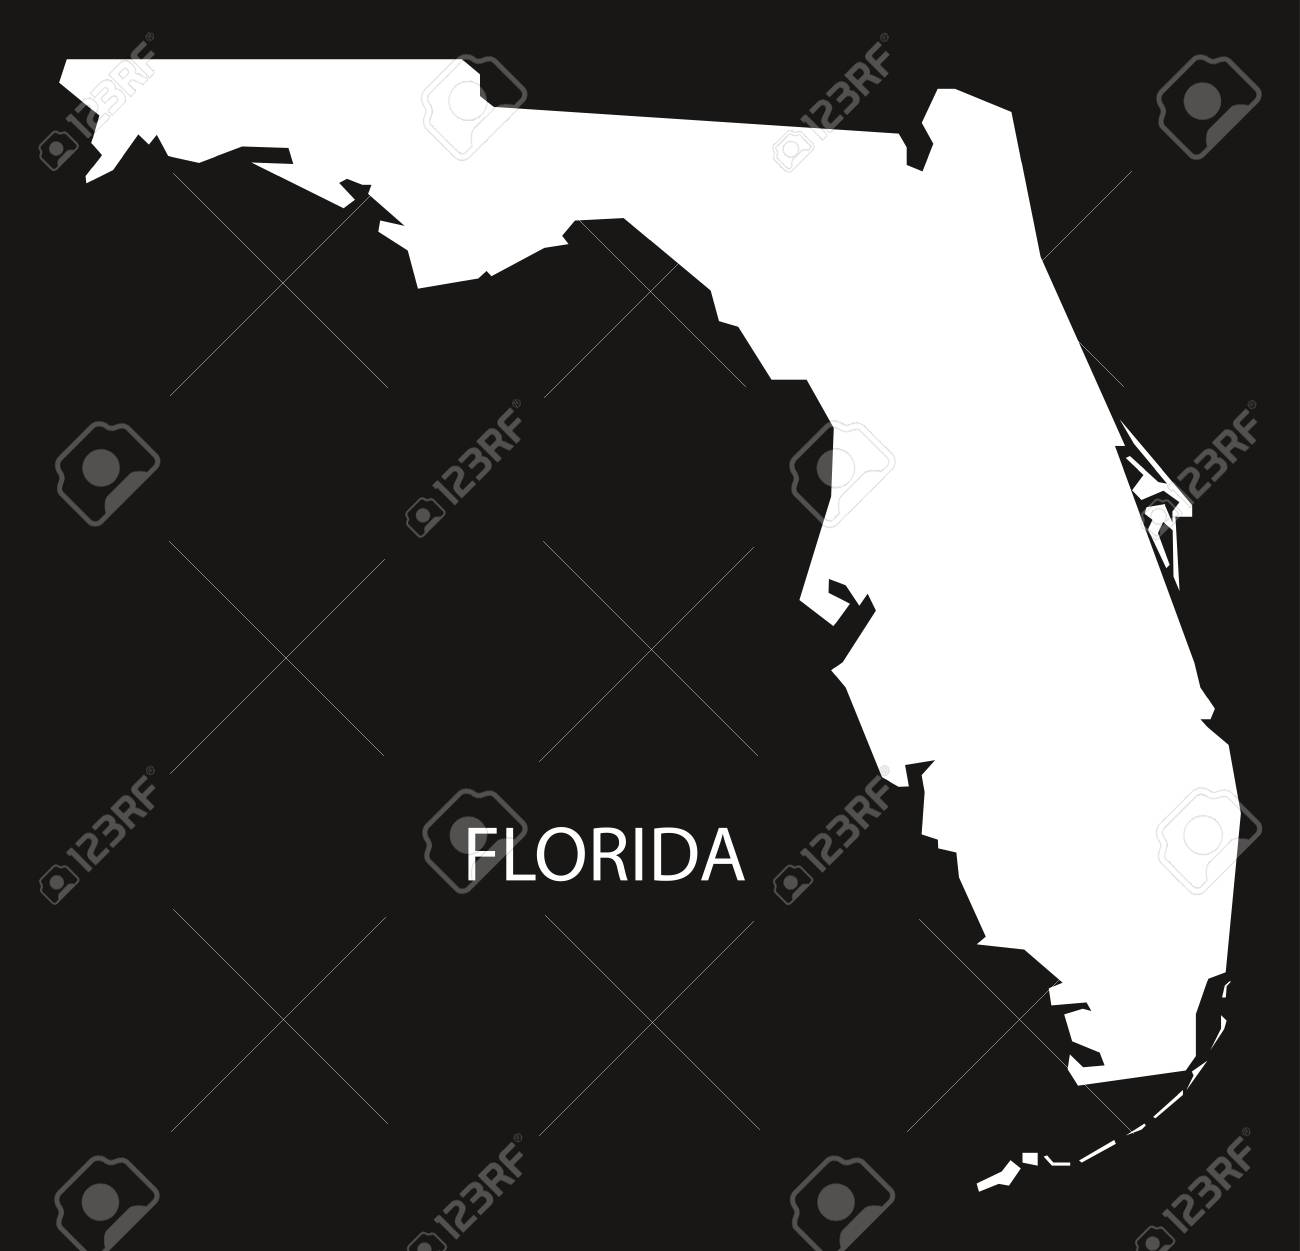 Florida Usa Map.Florida Usa Map Black Inverted Silhouette Royalty Free Cliparts